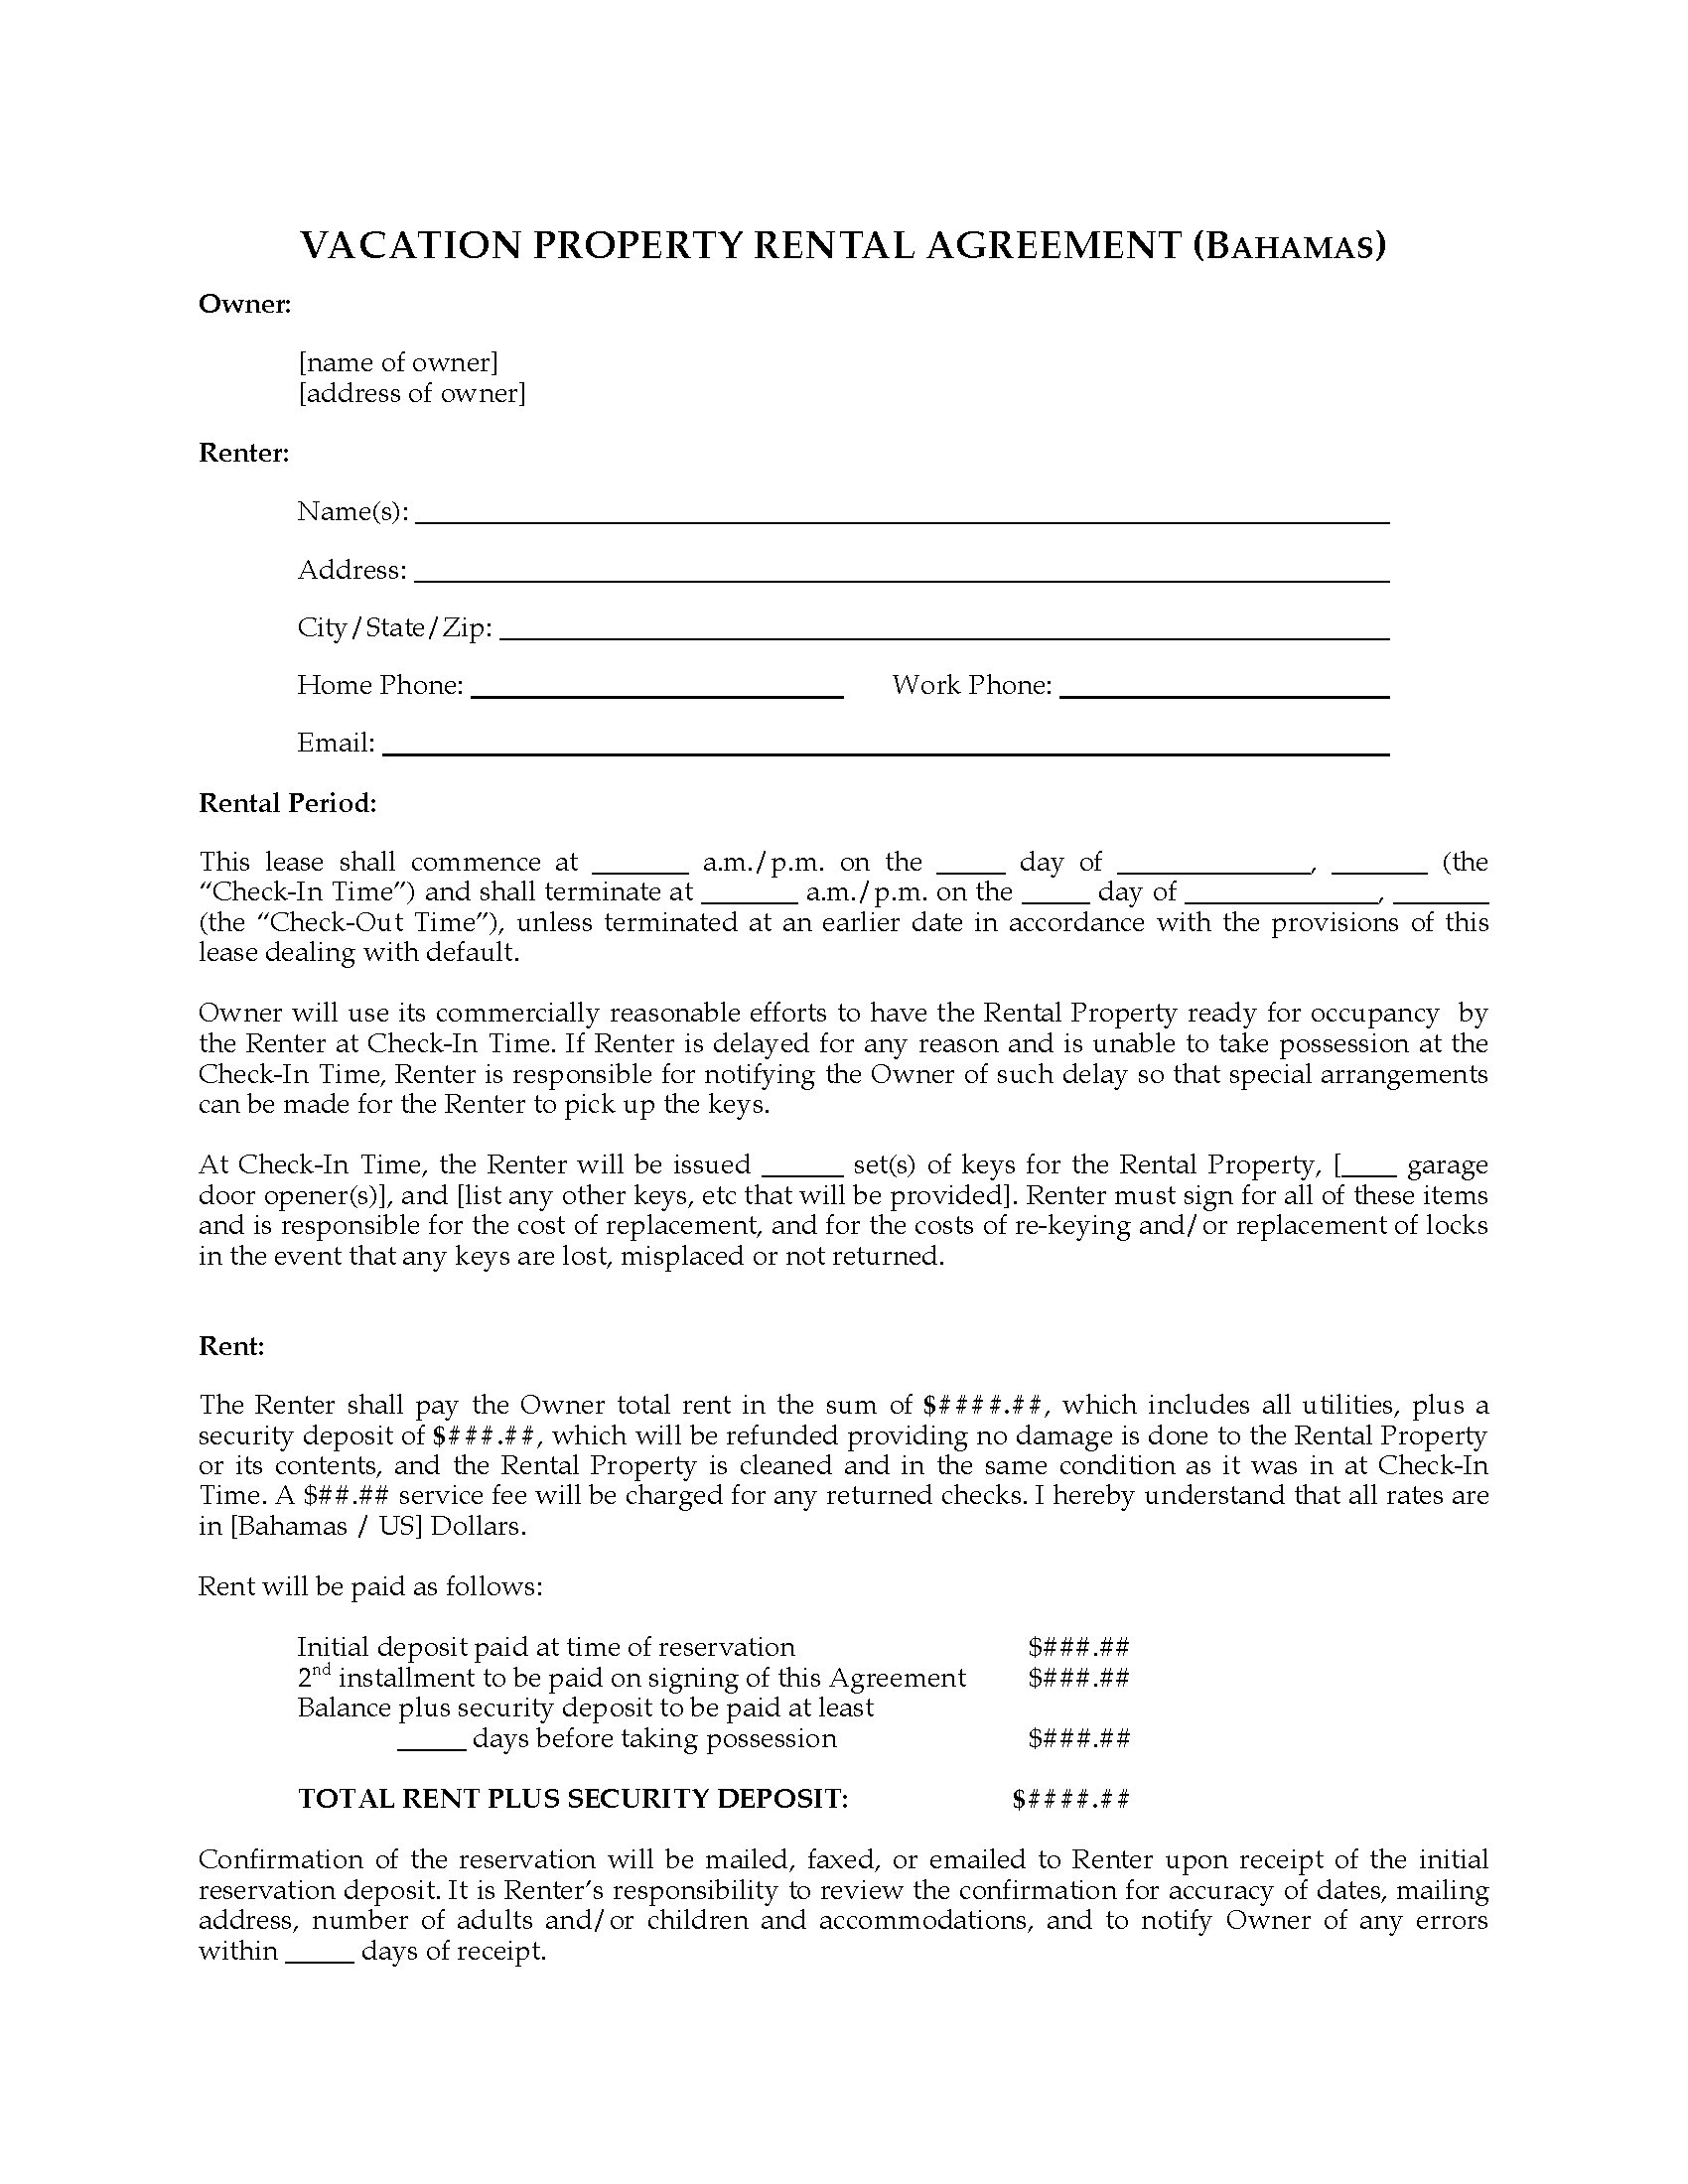 Bahamas Vacation Property Rental Agreement Legal Forms And